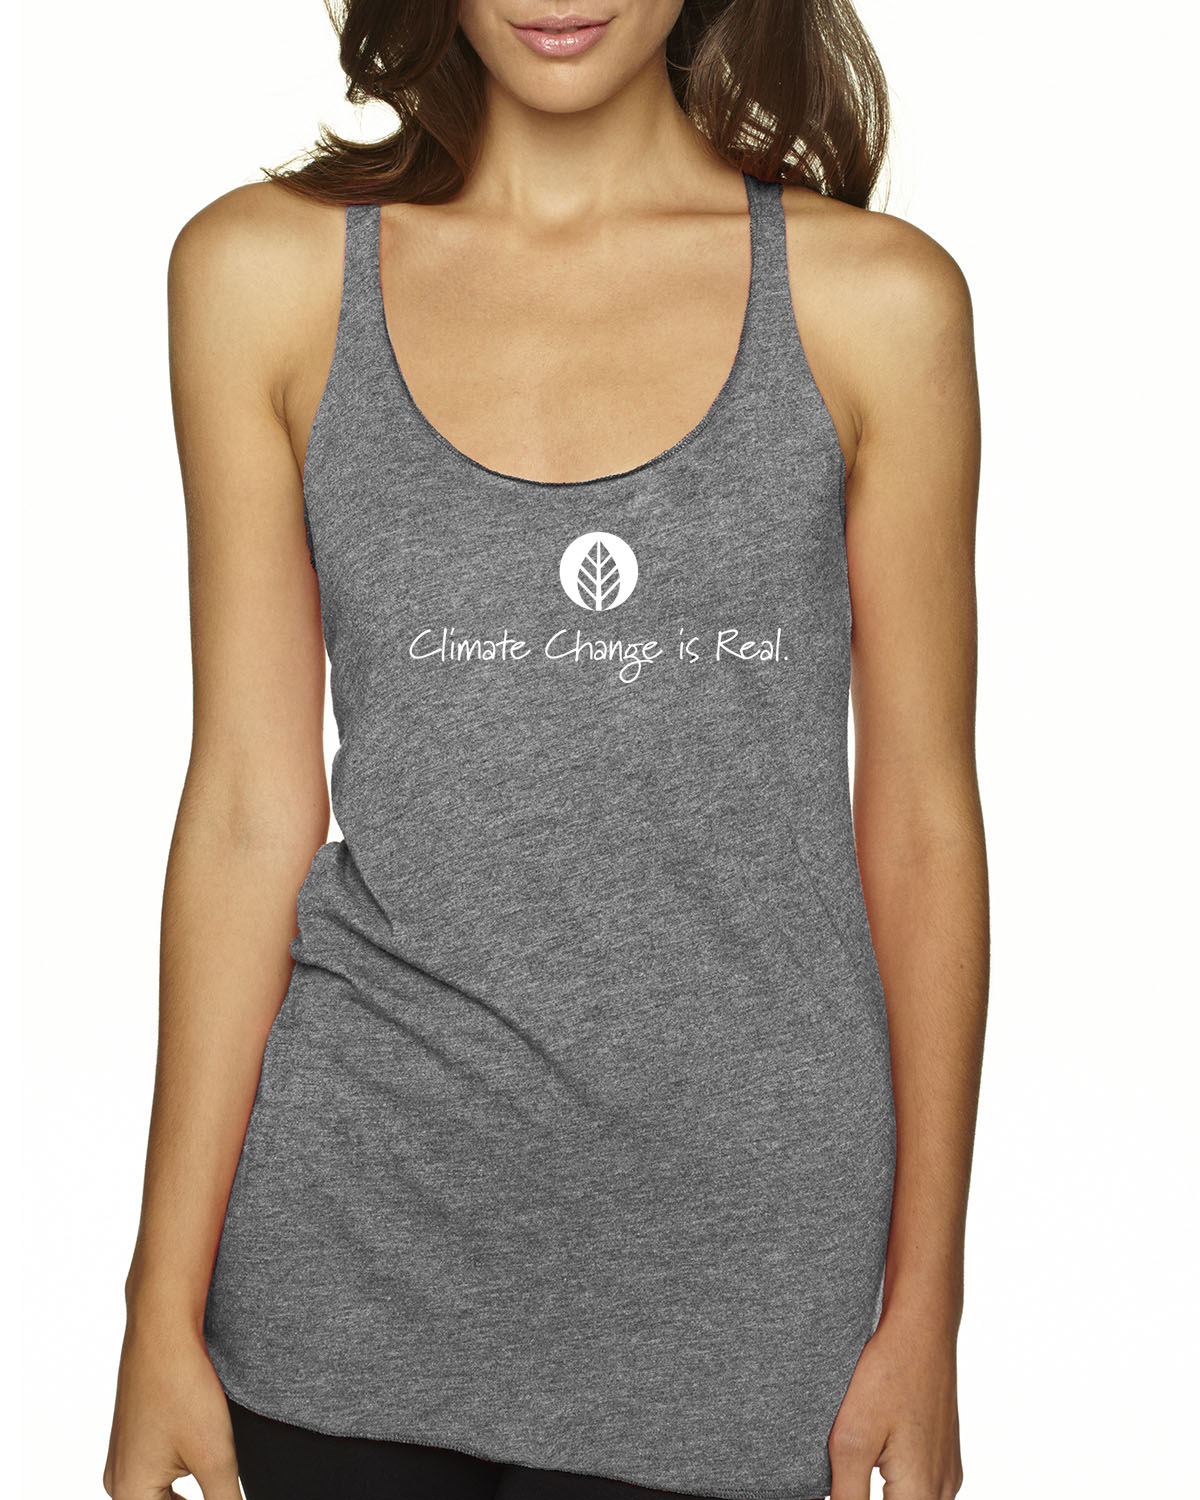 Tri-blend racer-back climate change environment tank top (Heather Gray)